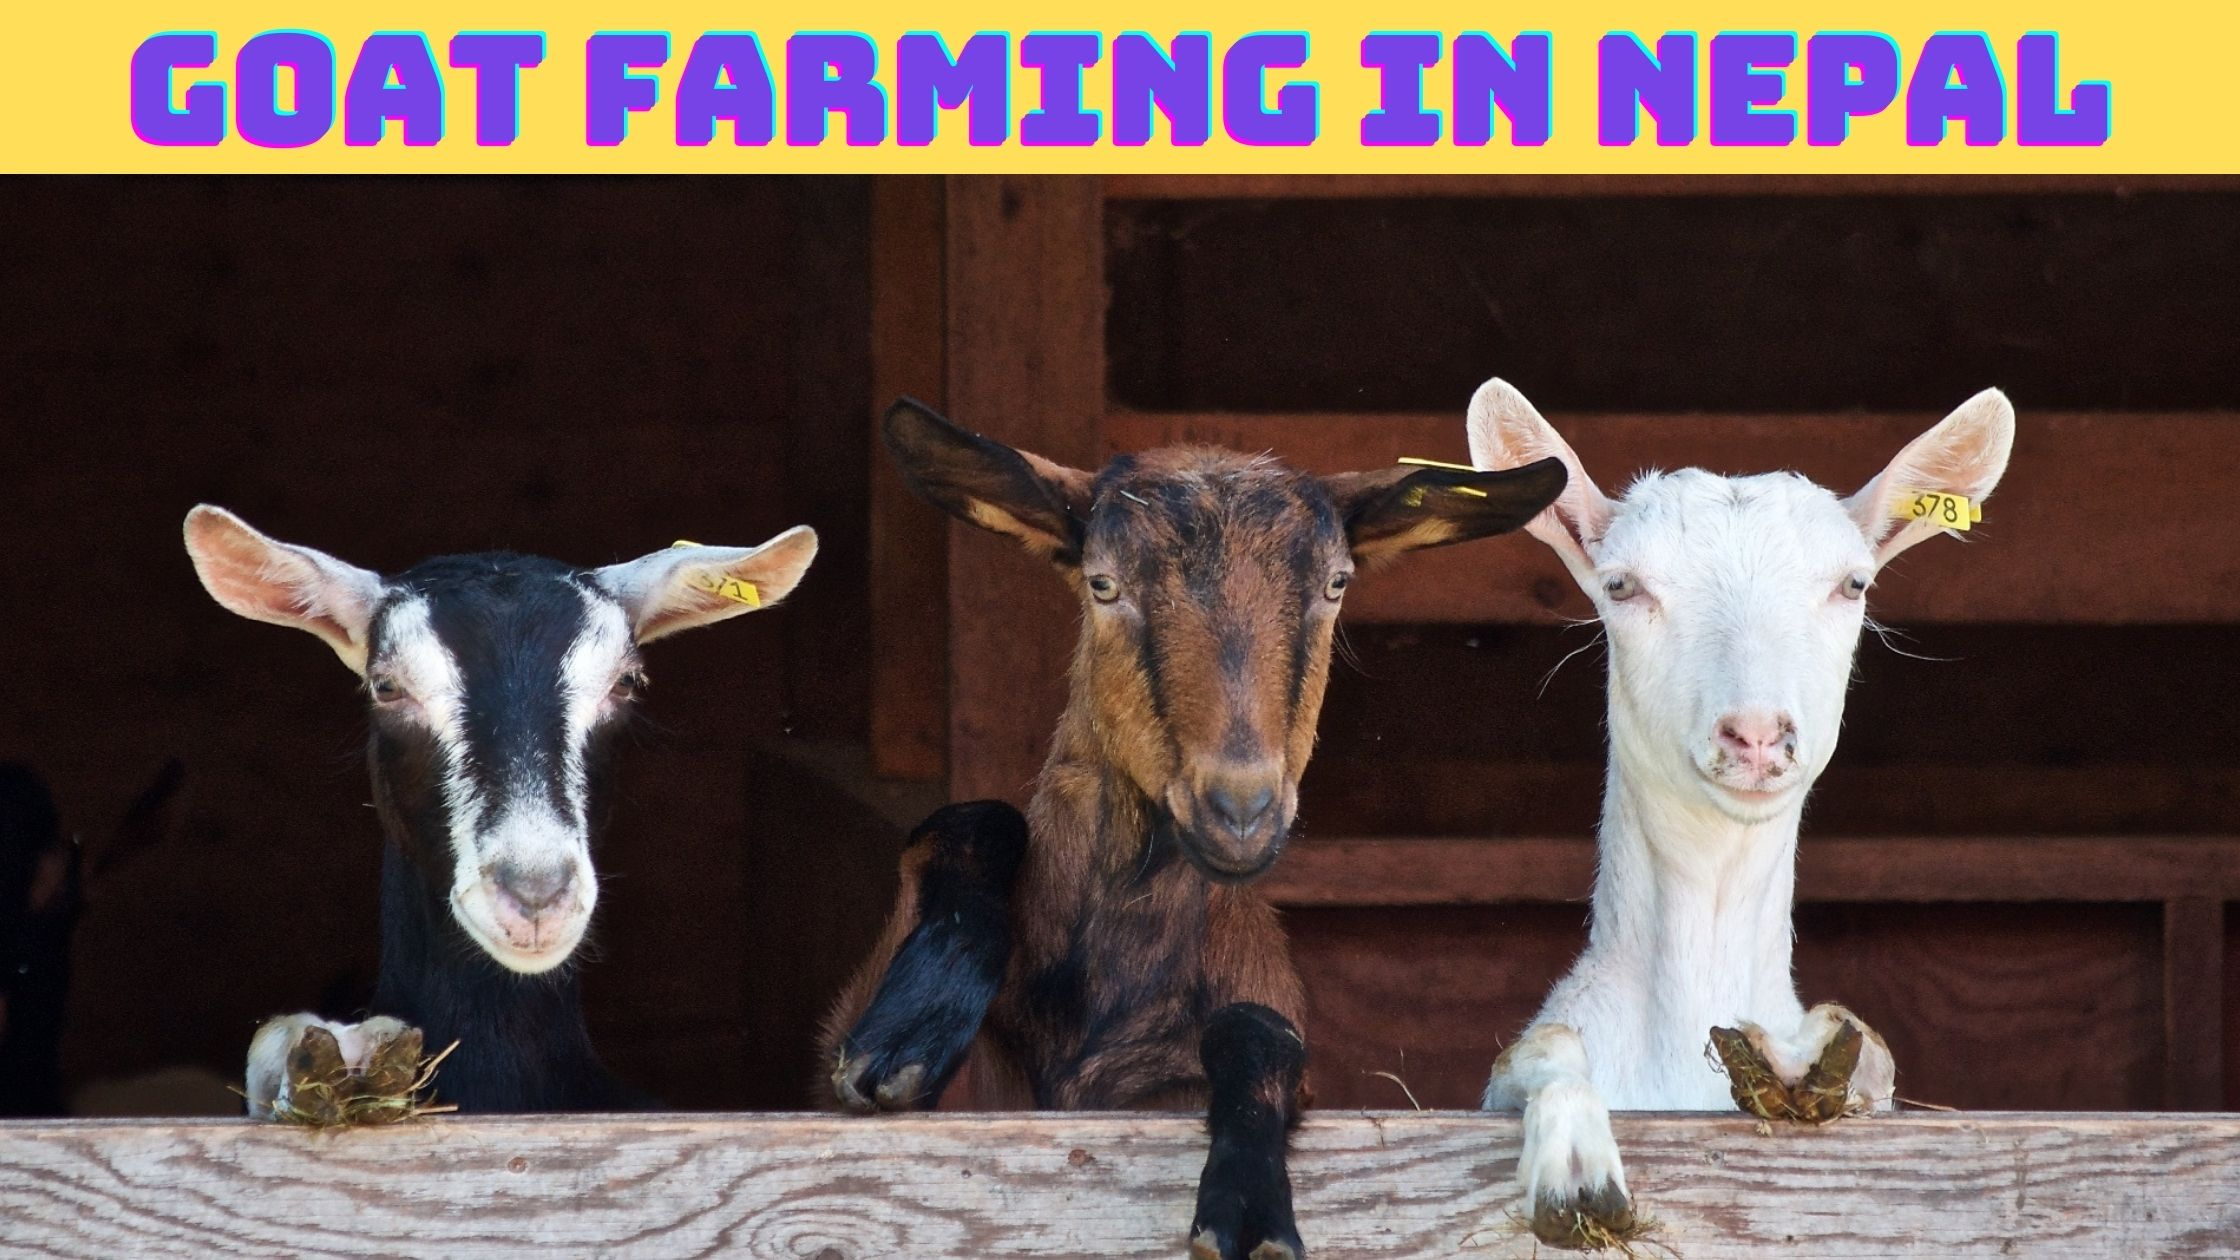 Goat farming in Nepal